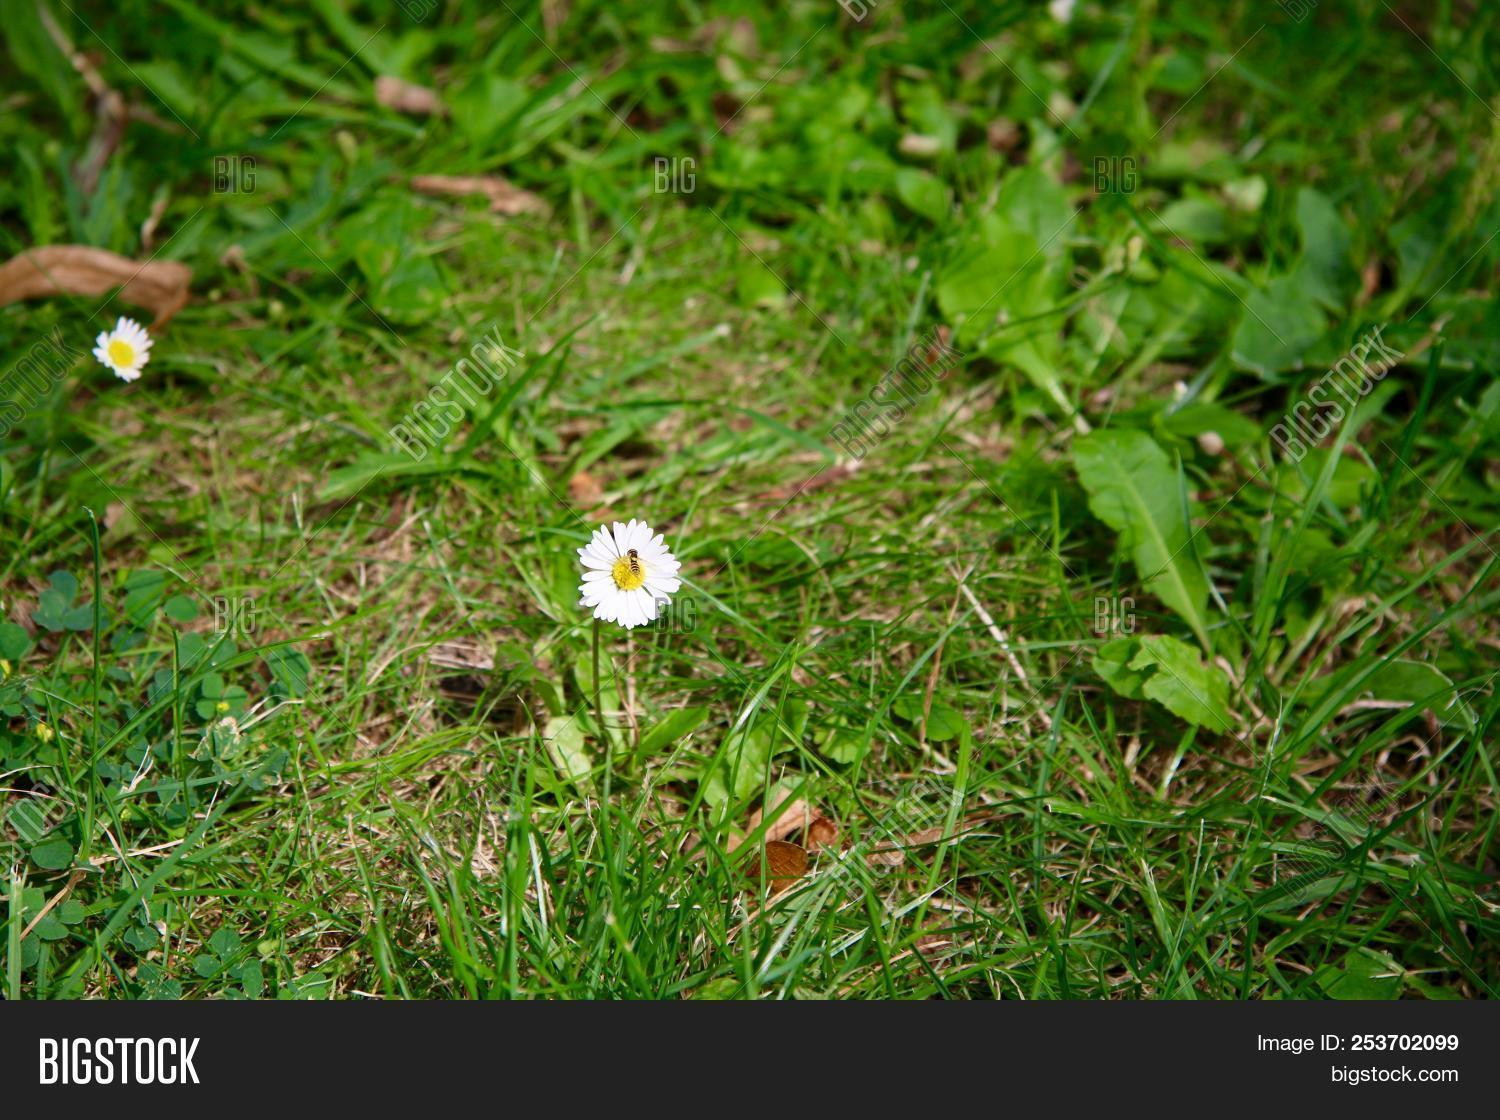 Insect On Small White Image Photo Free Trial Bigstock